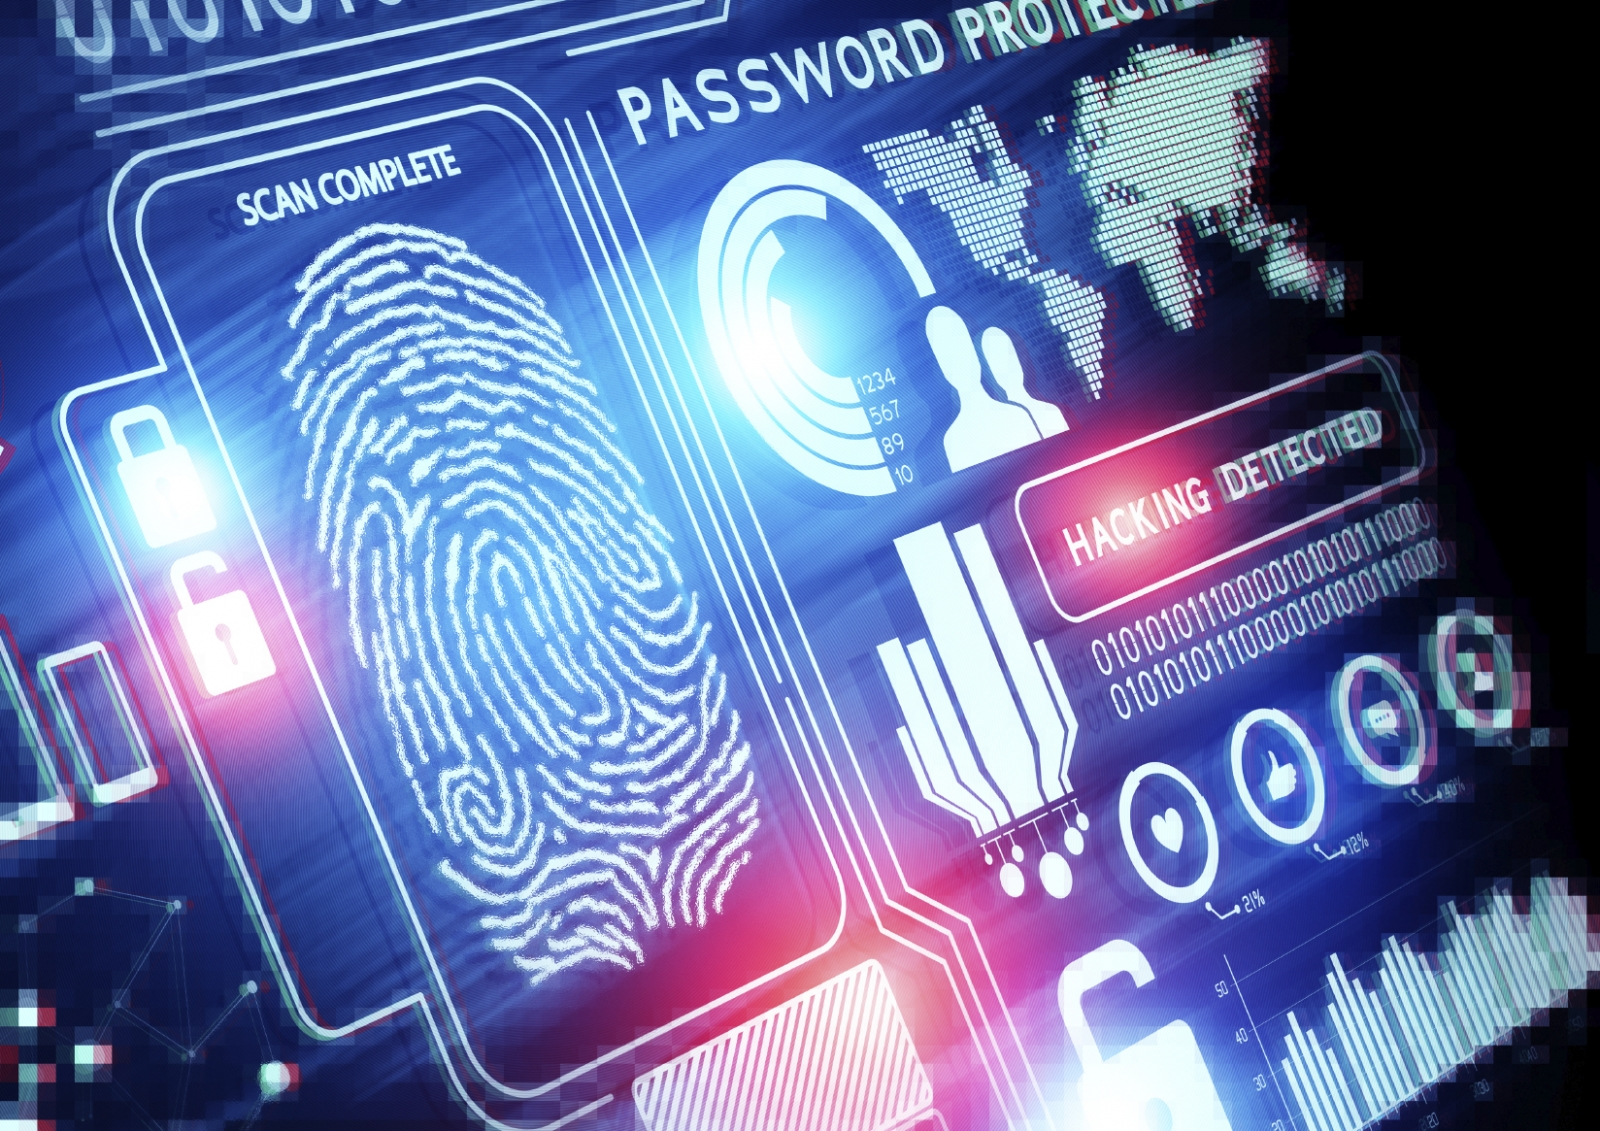 Mobile fraud is a much bigger problem